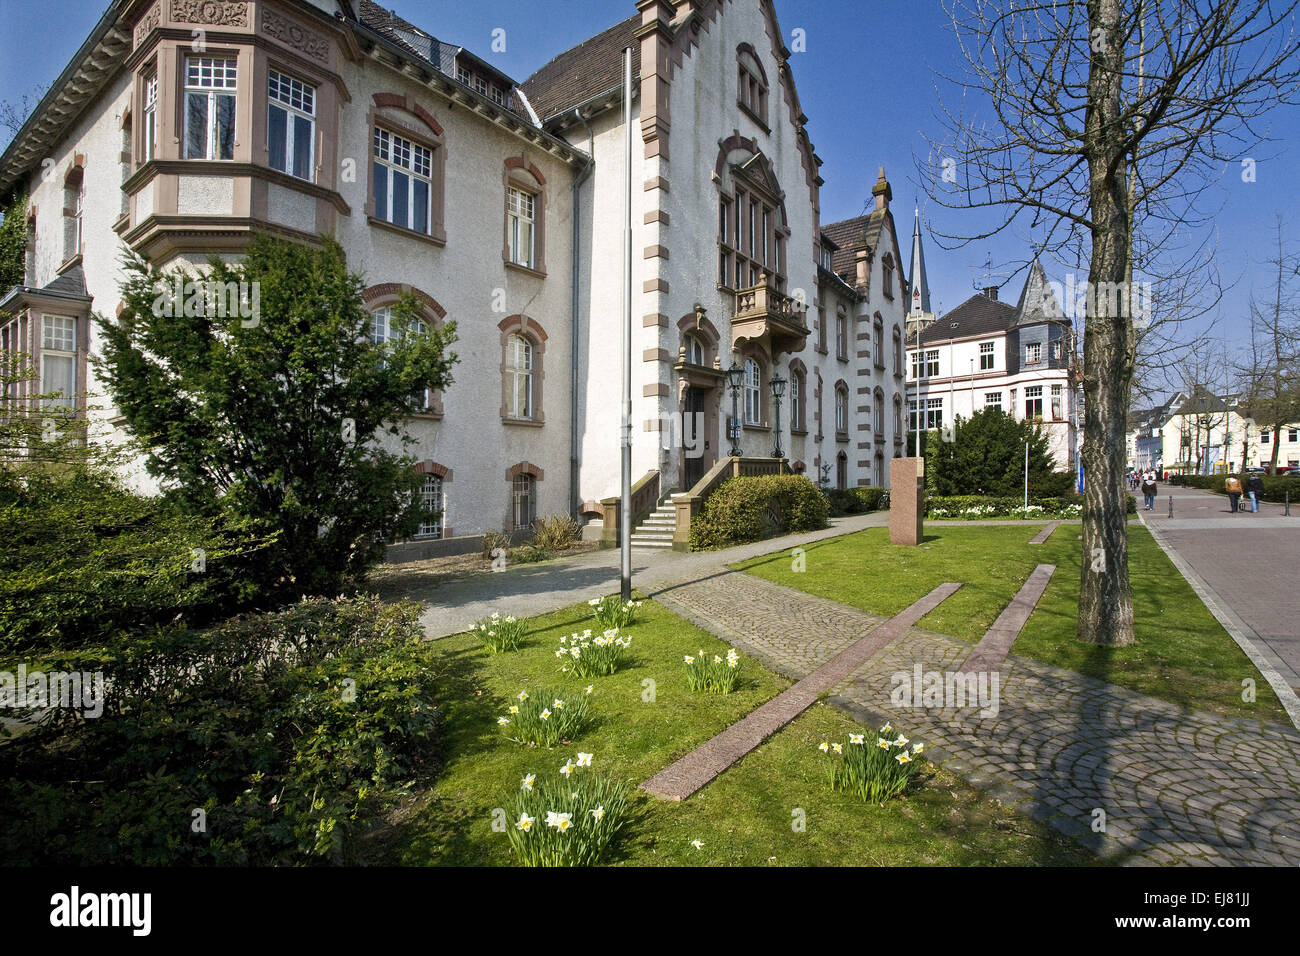 Community College, Moers, Germany - Stock Image